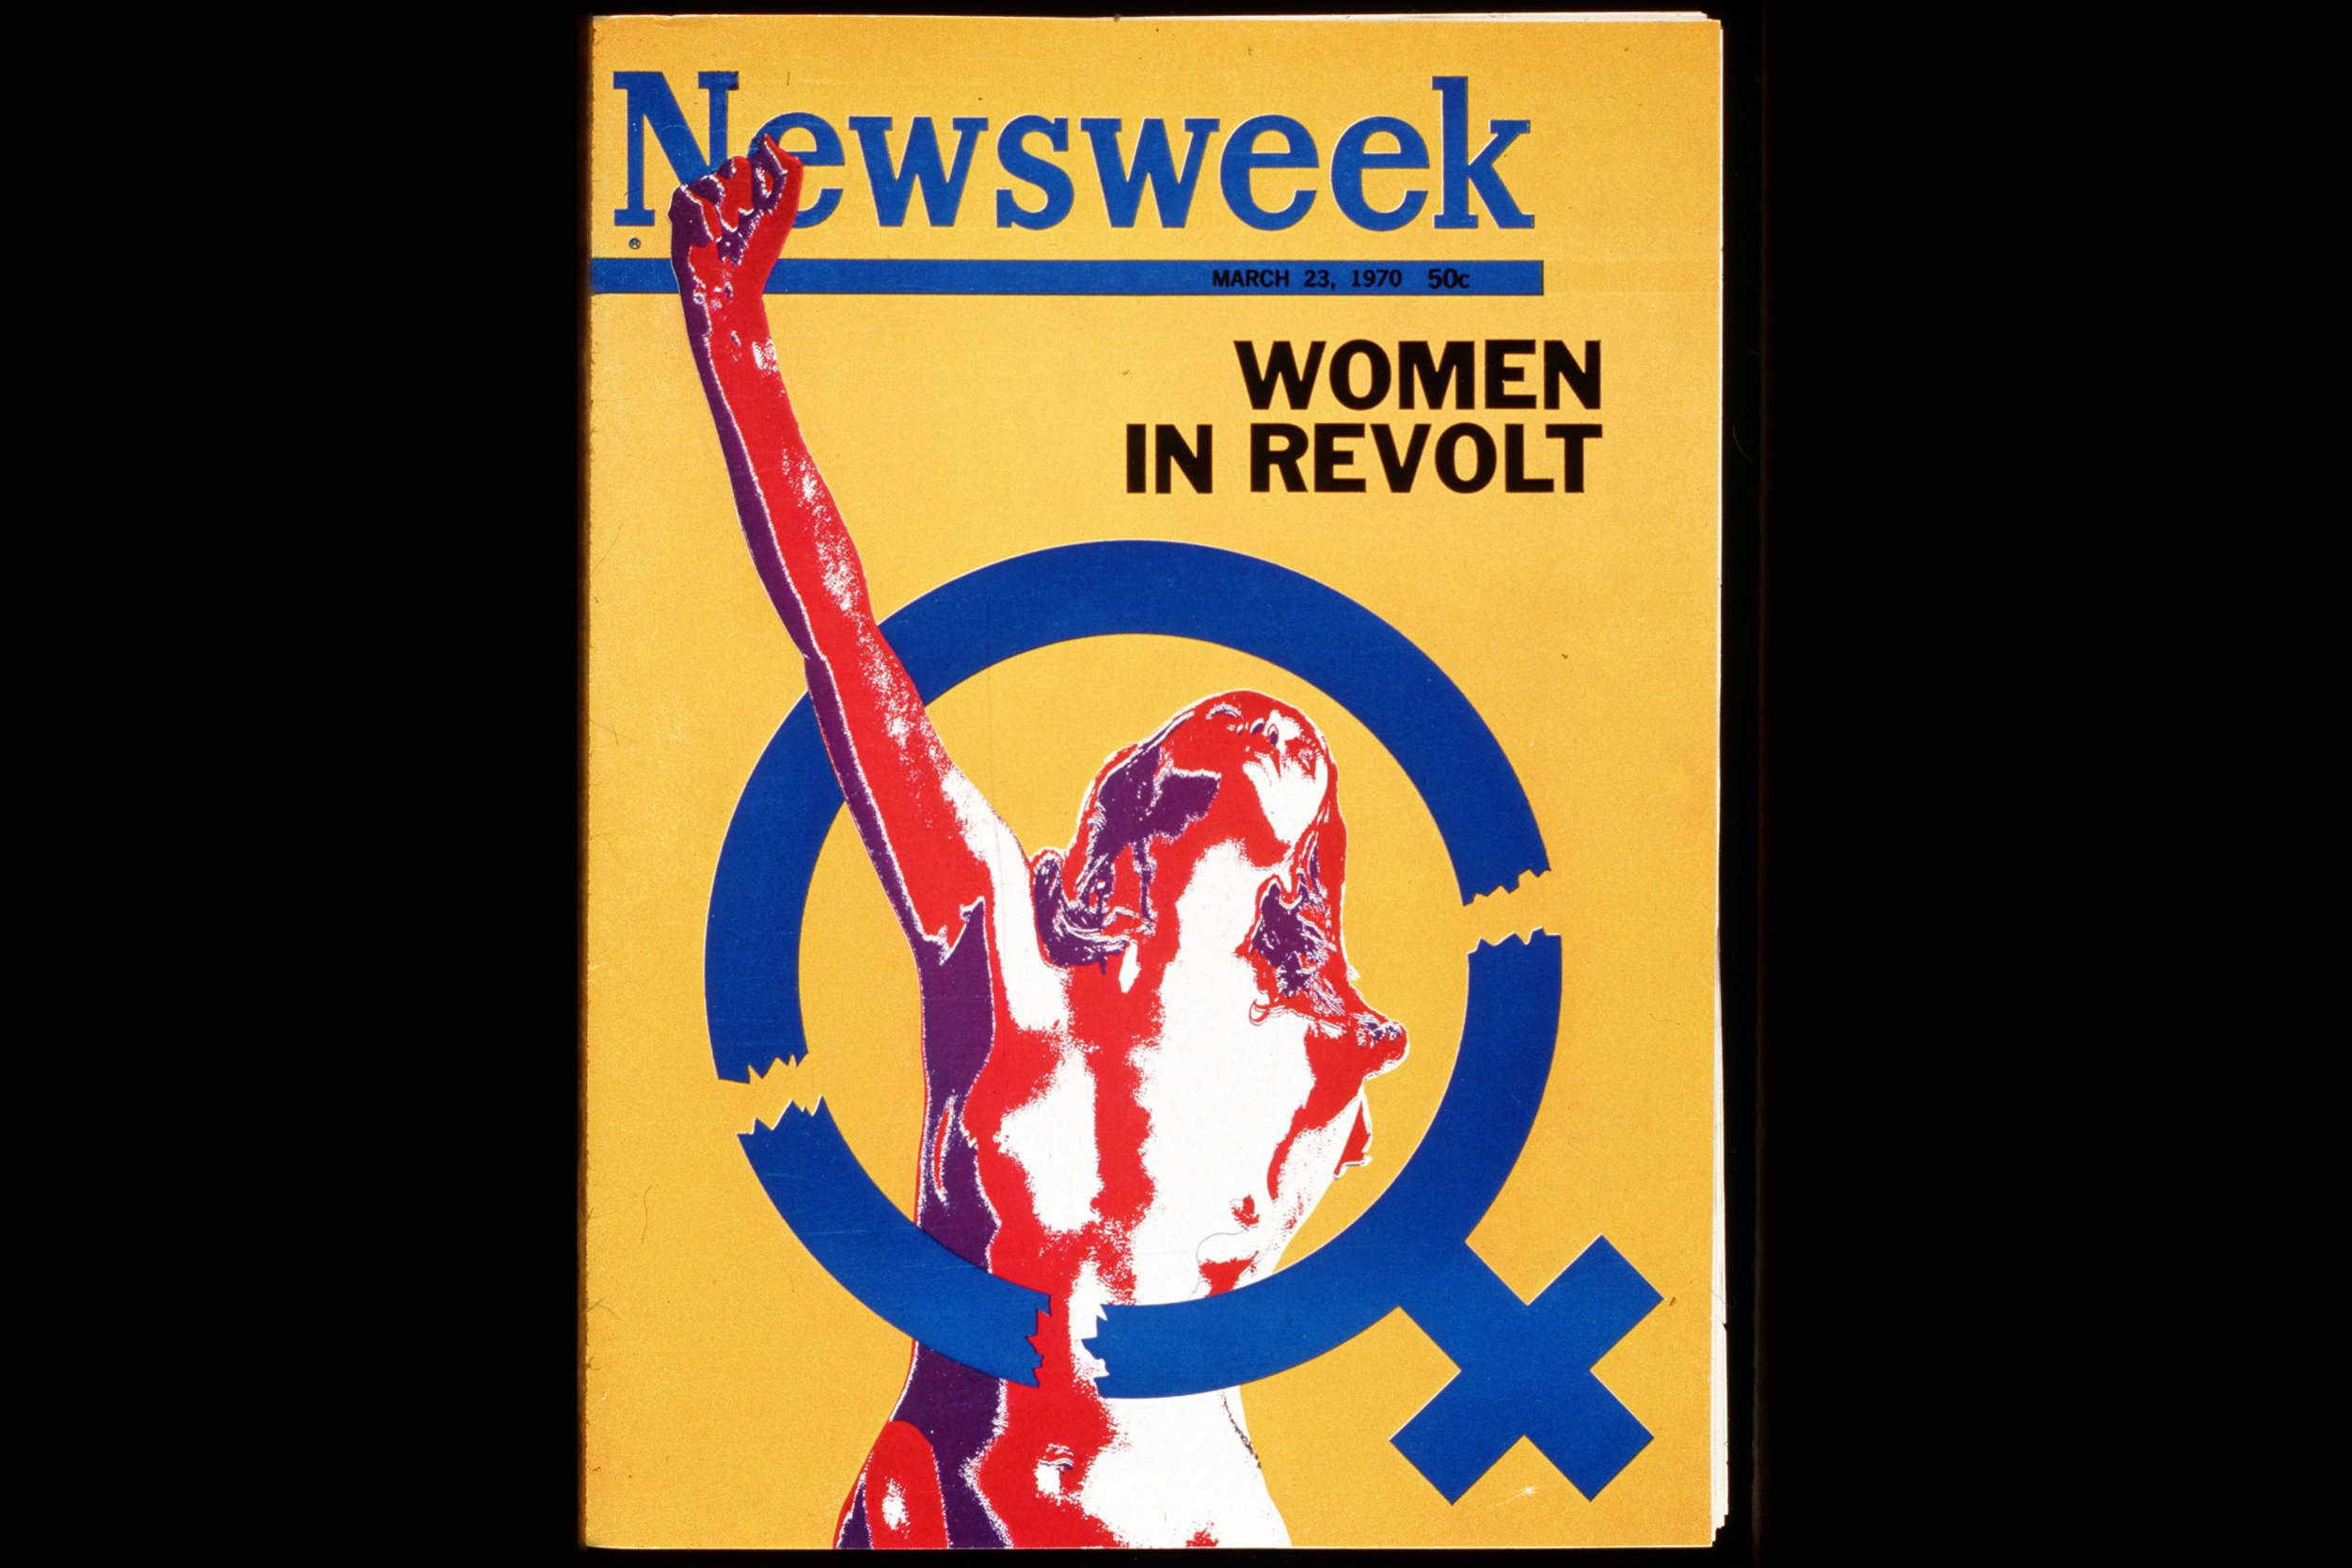 10-28-16 Newsweek cover Women in Revolt